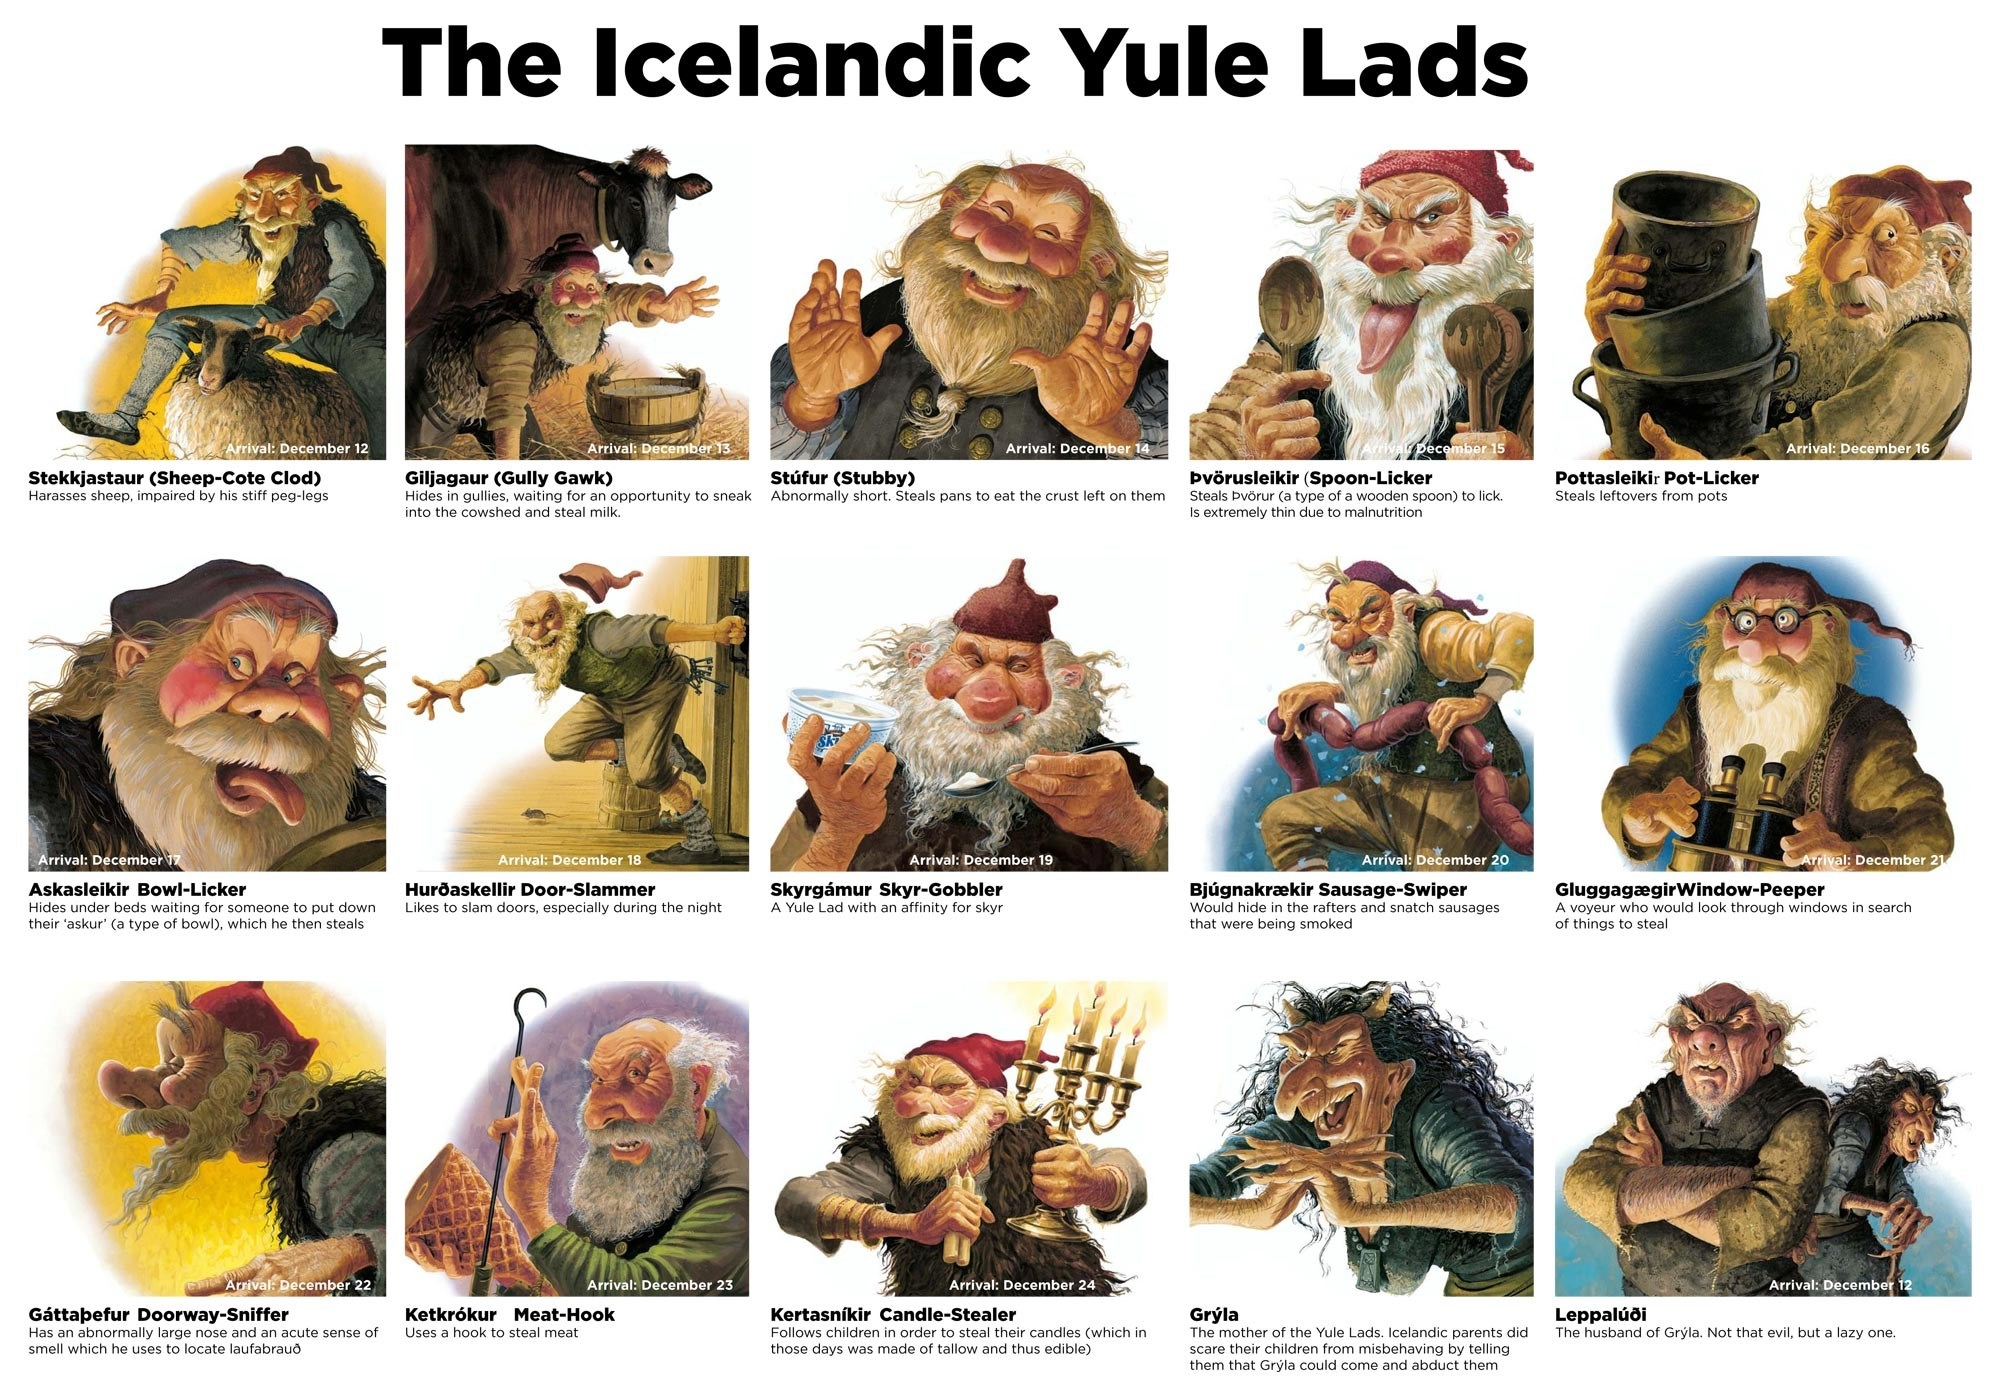 Drawings of all 13 Yule Lads ranging from kooky Santa Claus–like to evil-looking